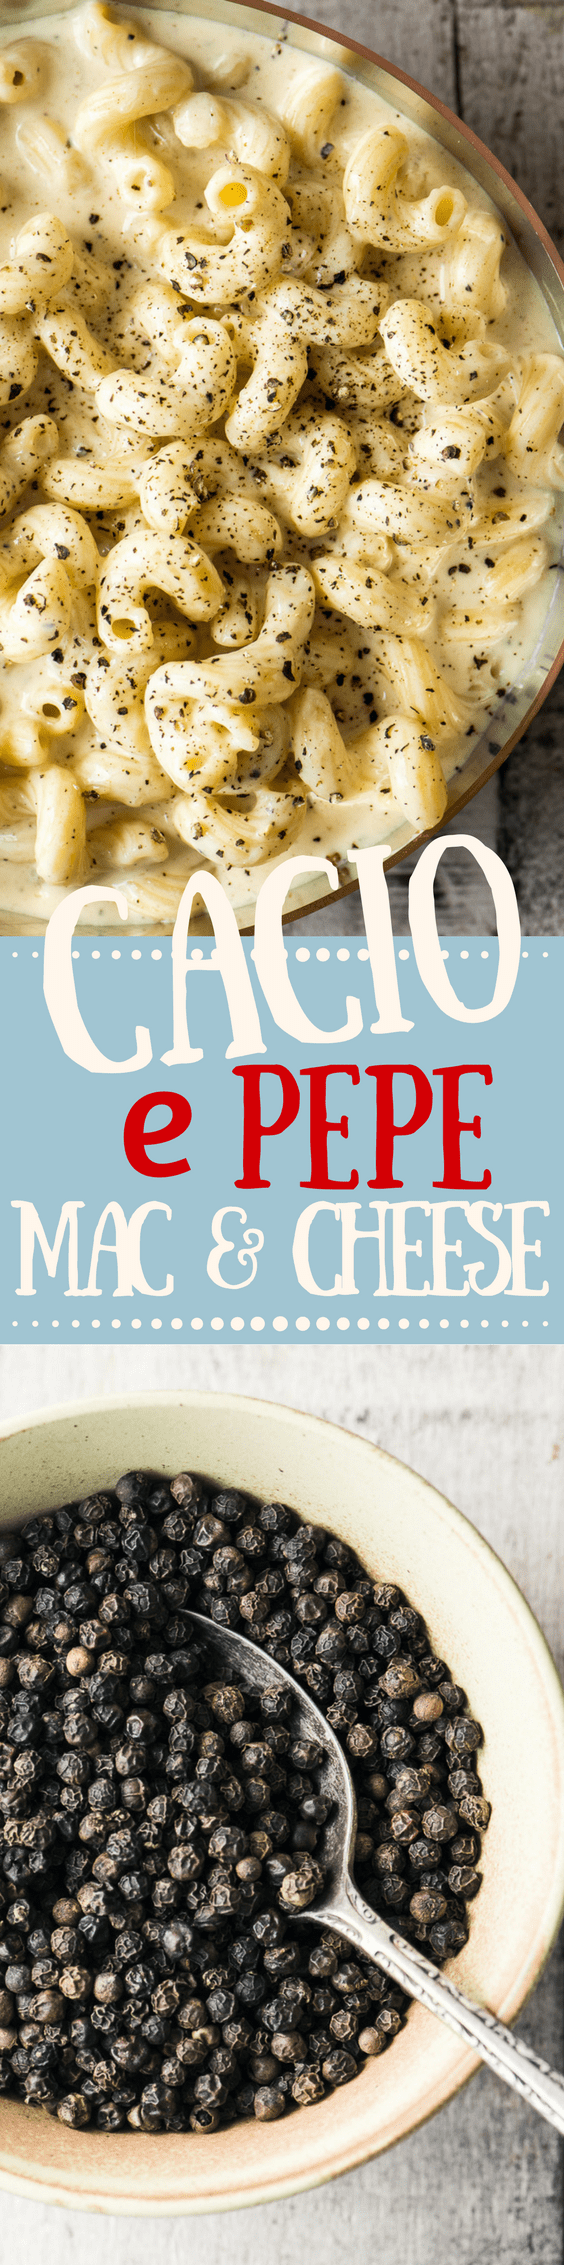 Cacio e Pepe Macaroni and Cheese marries the uber simple but powerfully flavored classic Italian pasta with everybody's favorite comfort food ~ delish! #pasta #macaroniandcheese #onepotmeal #comfortfood #30minutemeal #italianpasta #italianpastarecipe #easypastarecipe #recipe #dinner #easydinner #cheese #macandcheese